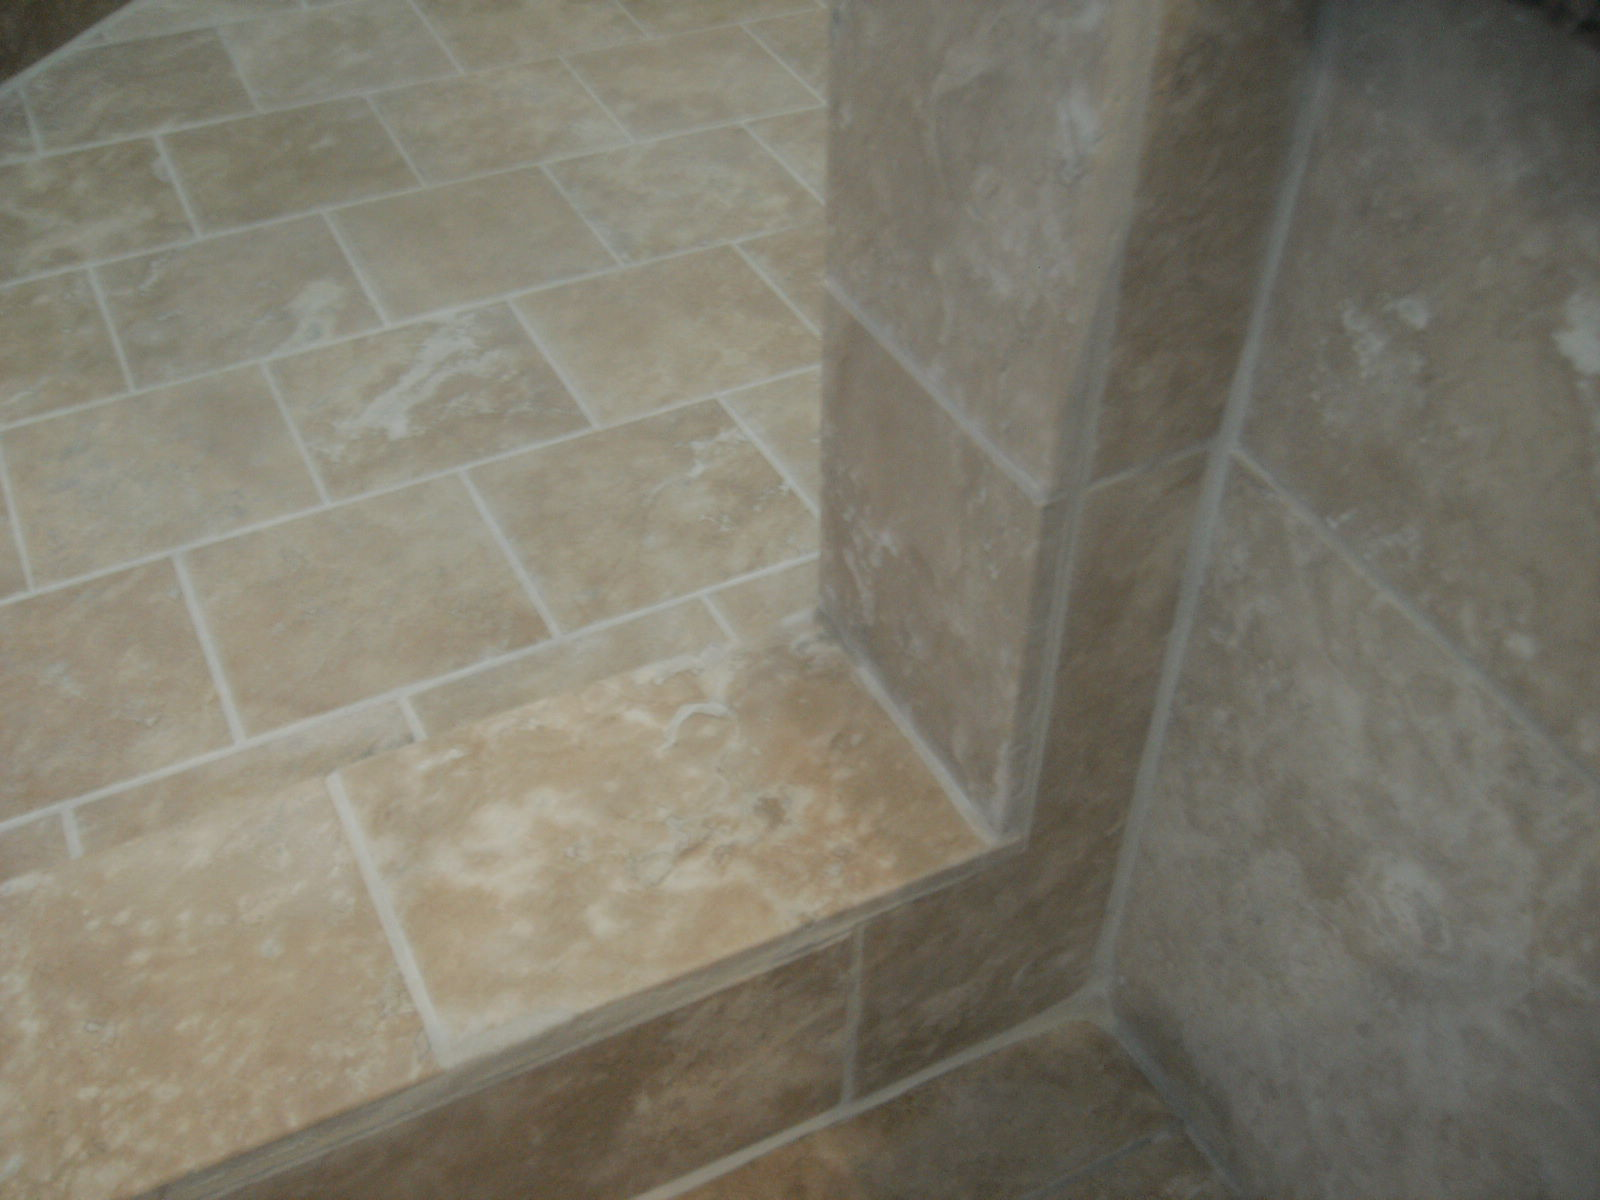 Black mold on bathroom tiles with wonderful photo for How to clean bathroom grout mold